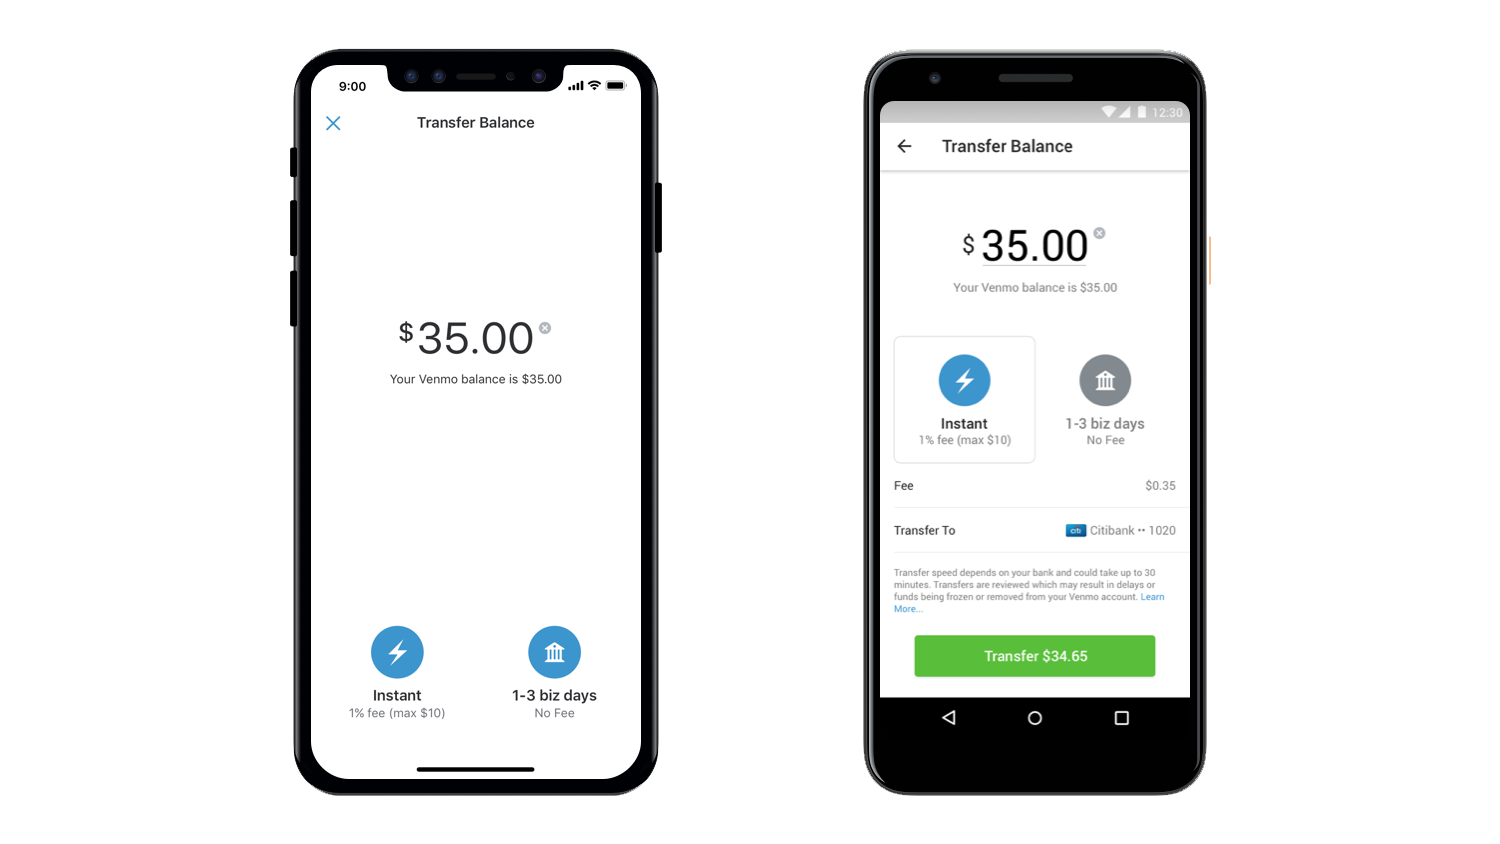 Need a quicker way to get the money from your Venmo account